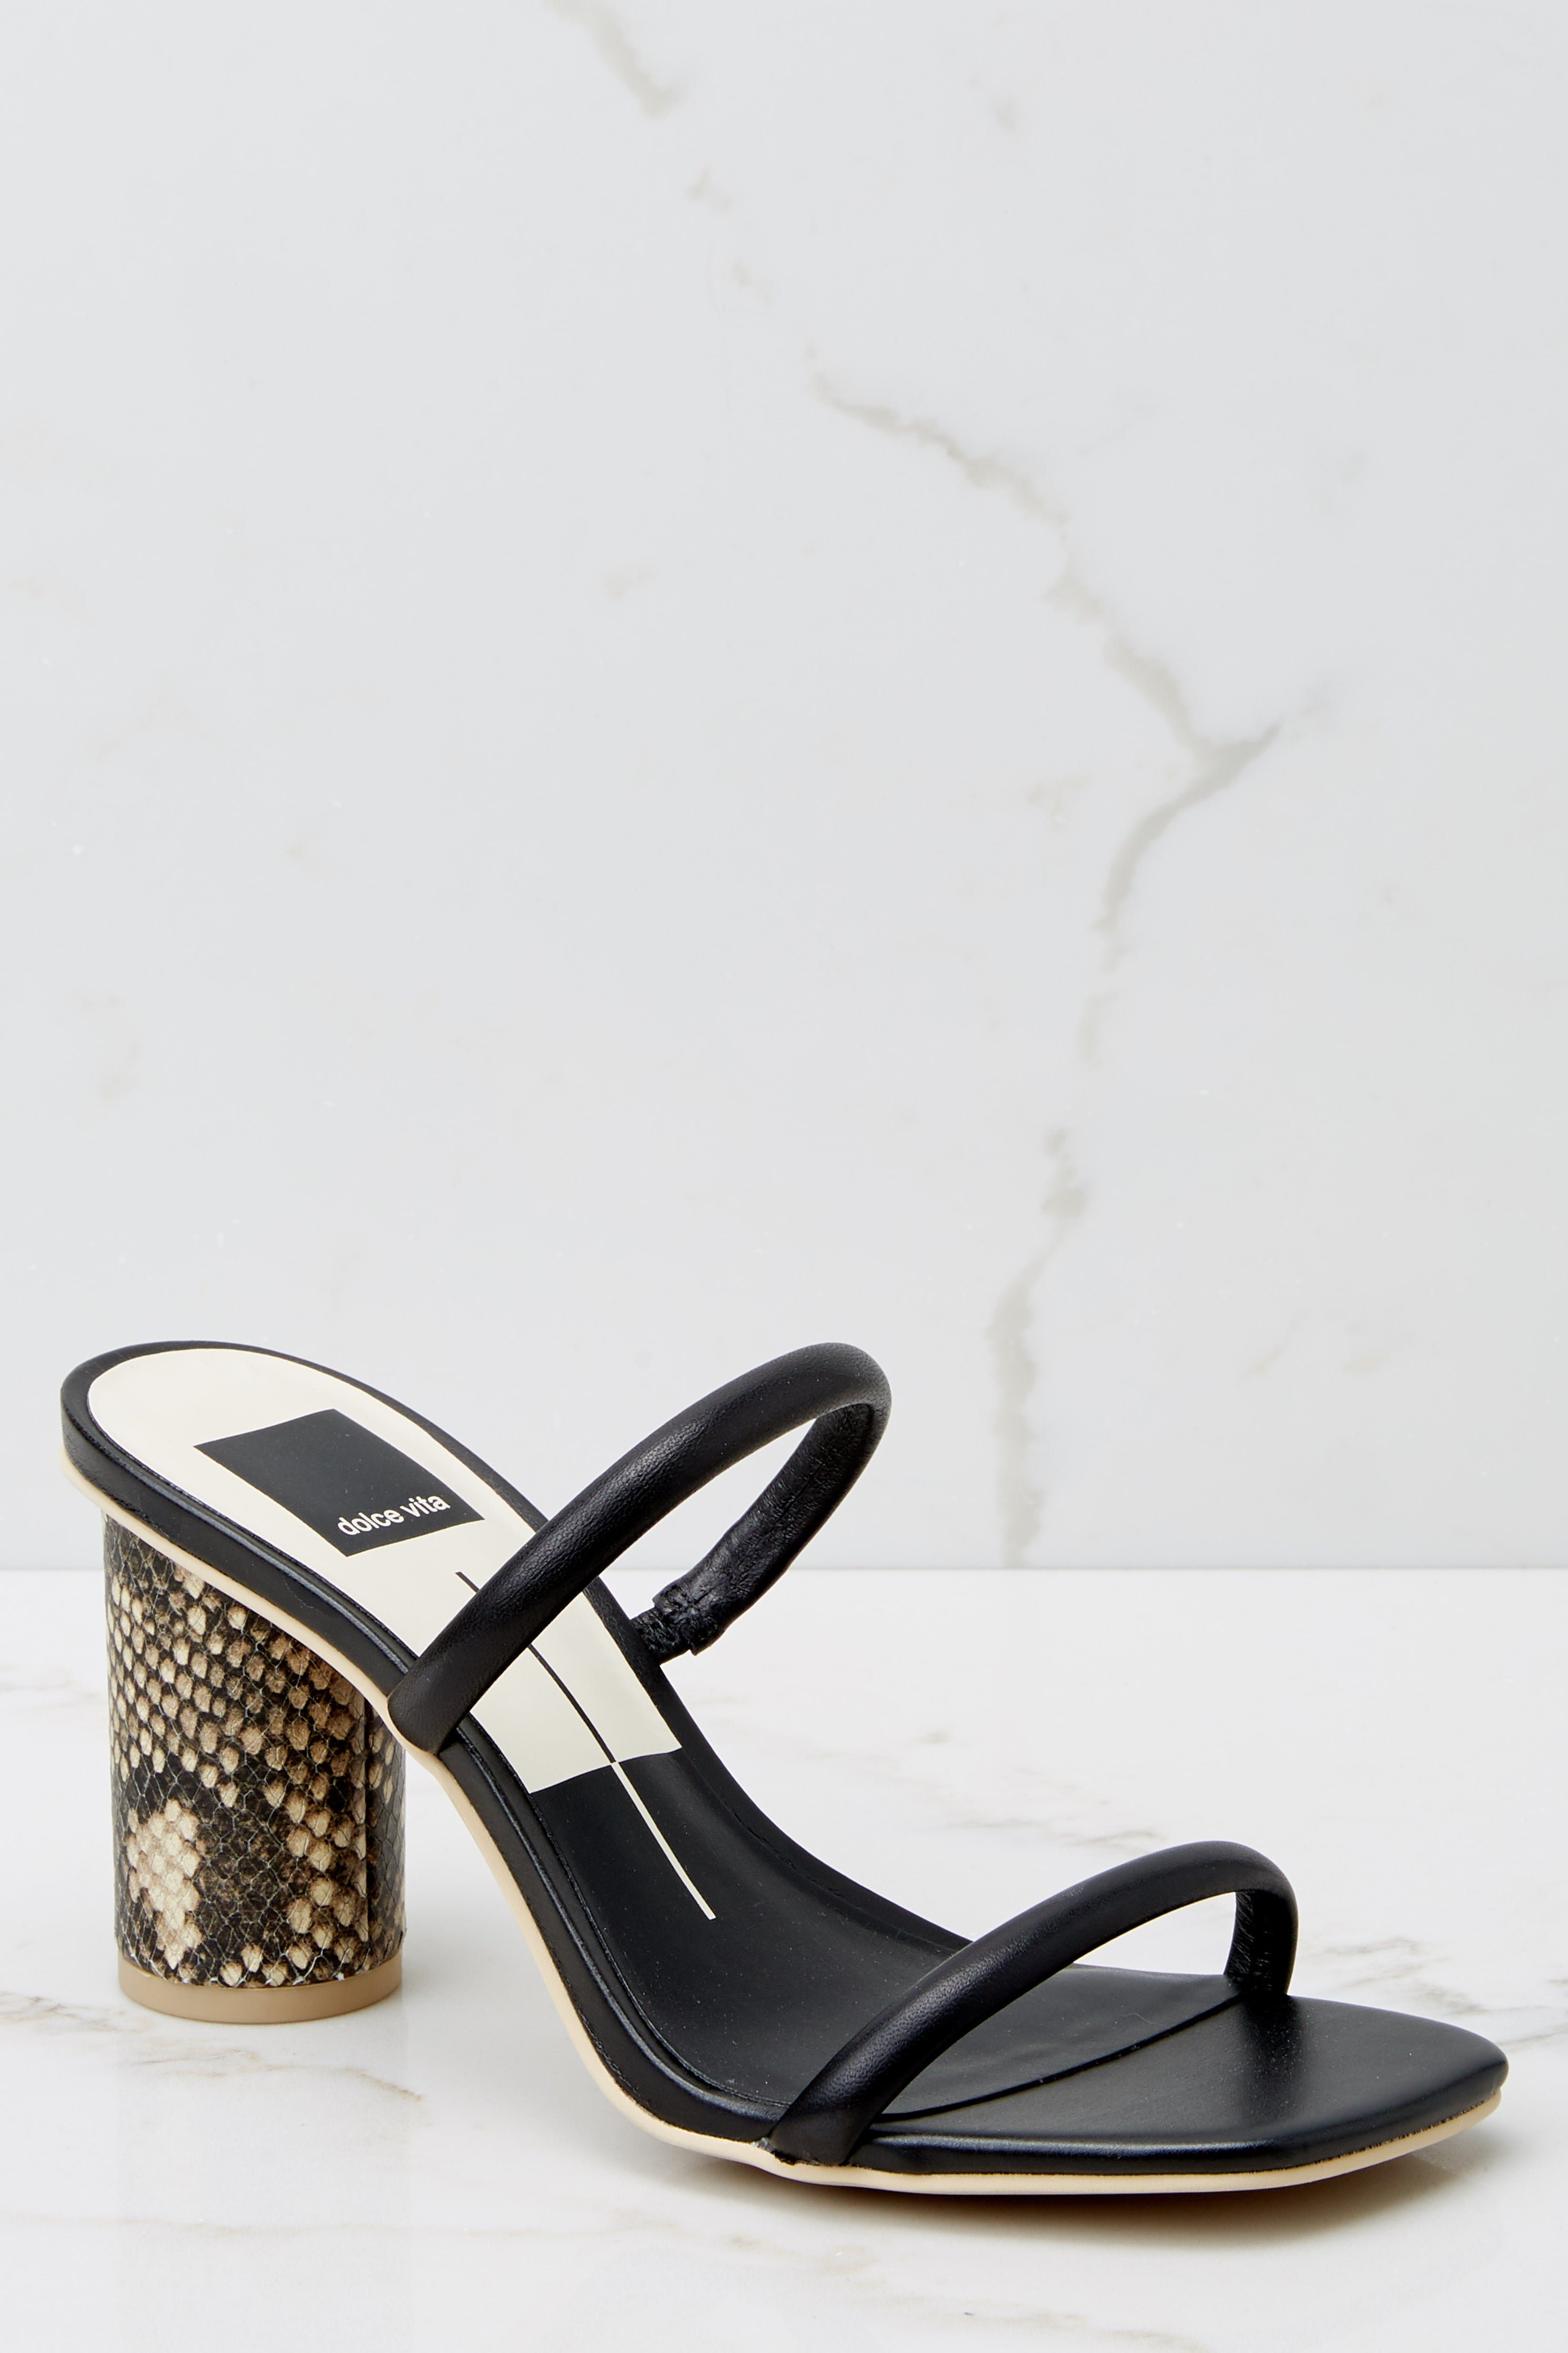 3 Noles Black Snakeskin High Heel Sandals at reddress.com